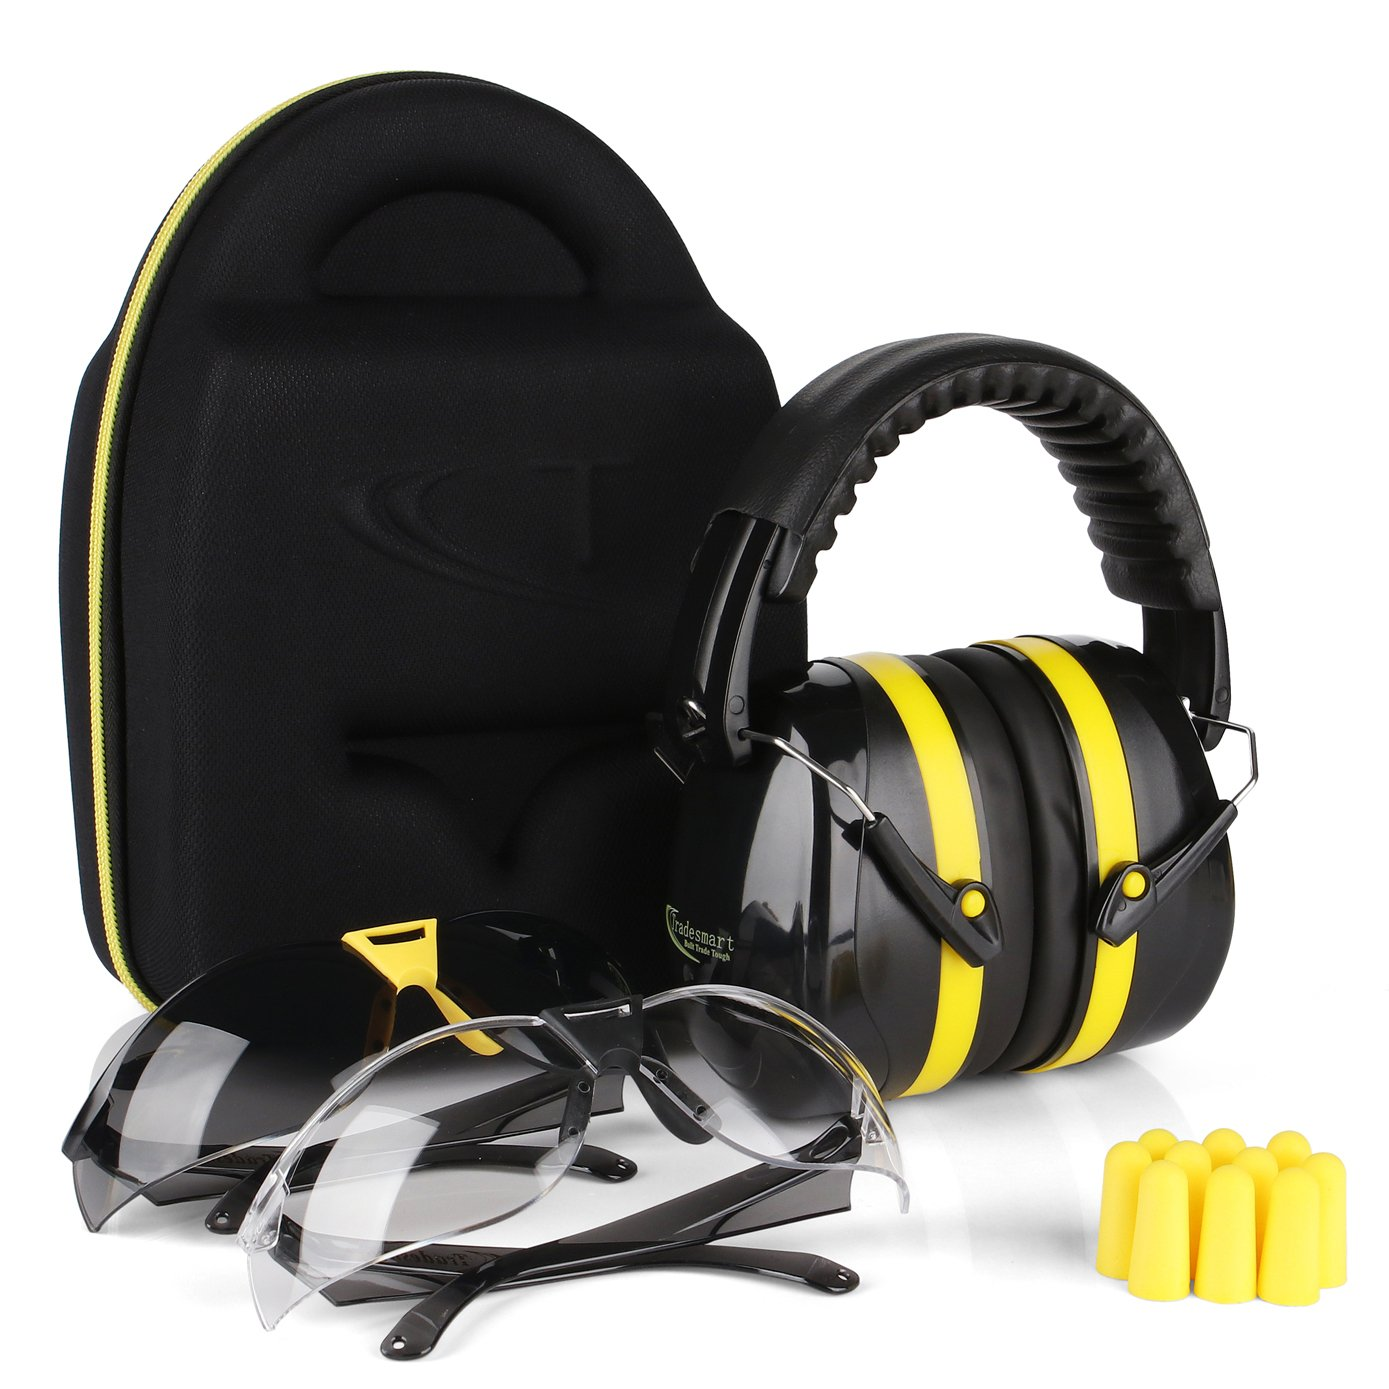 TRADESMART BUILT TRADE TOUGH Tradesmart Ear Muffs, Earplugs and 2PK Adjustable Gun Safety Glasses with Case - UV400 and Anti Fog Eye Protection by TRADESMART BUILT TRADE TOUGH